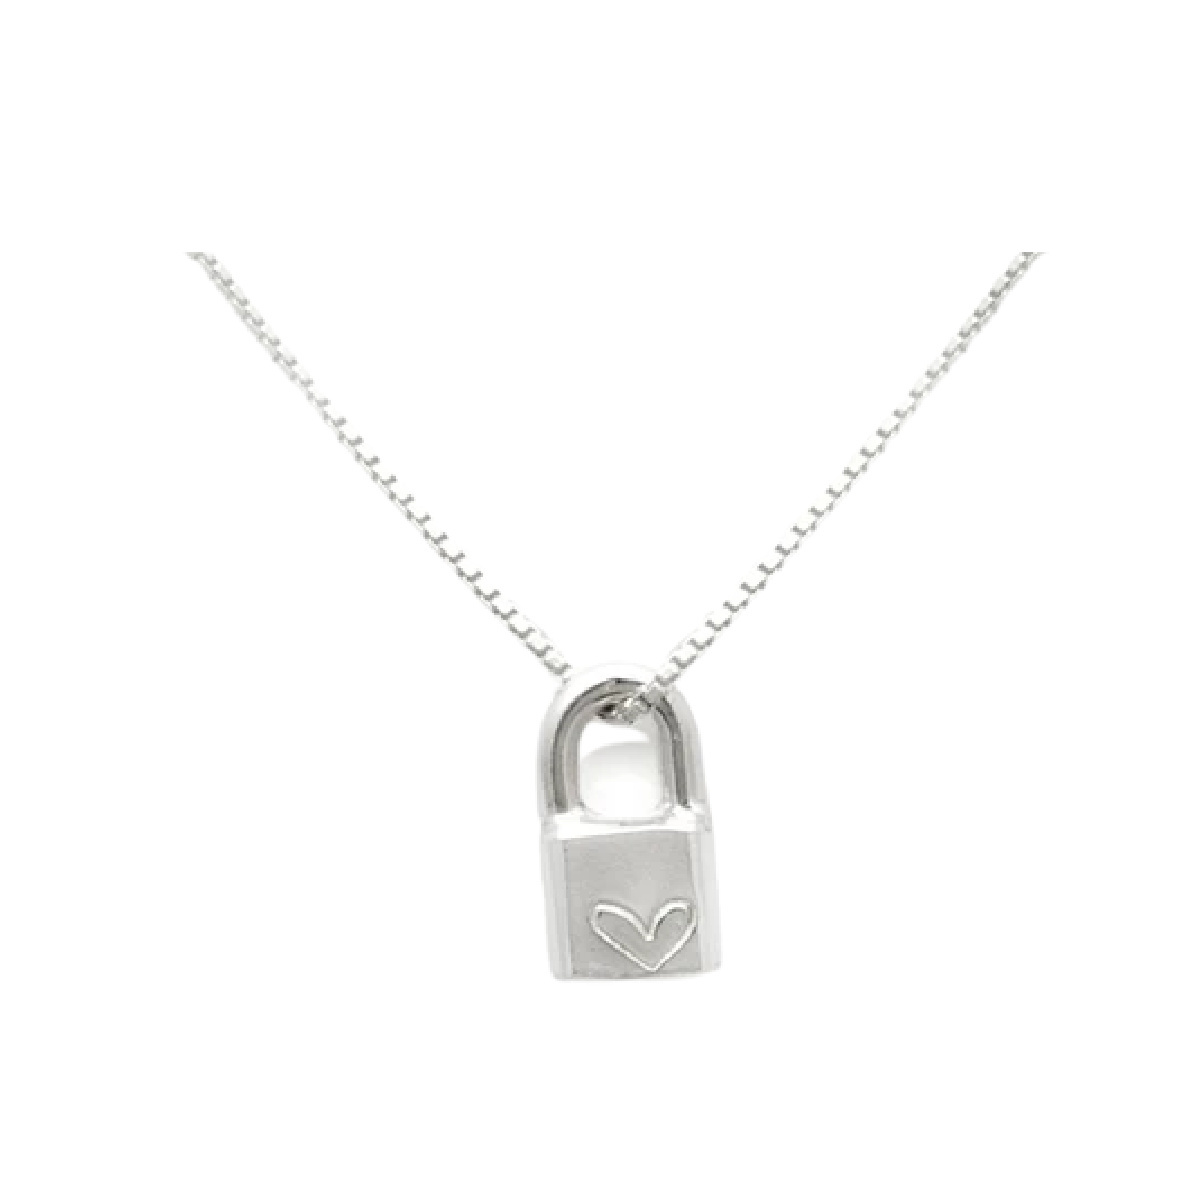 Laughing Sparrow Silver Love Heart Lock Necklace